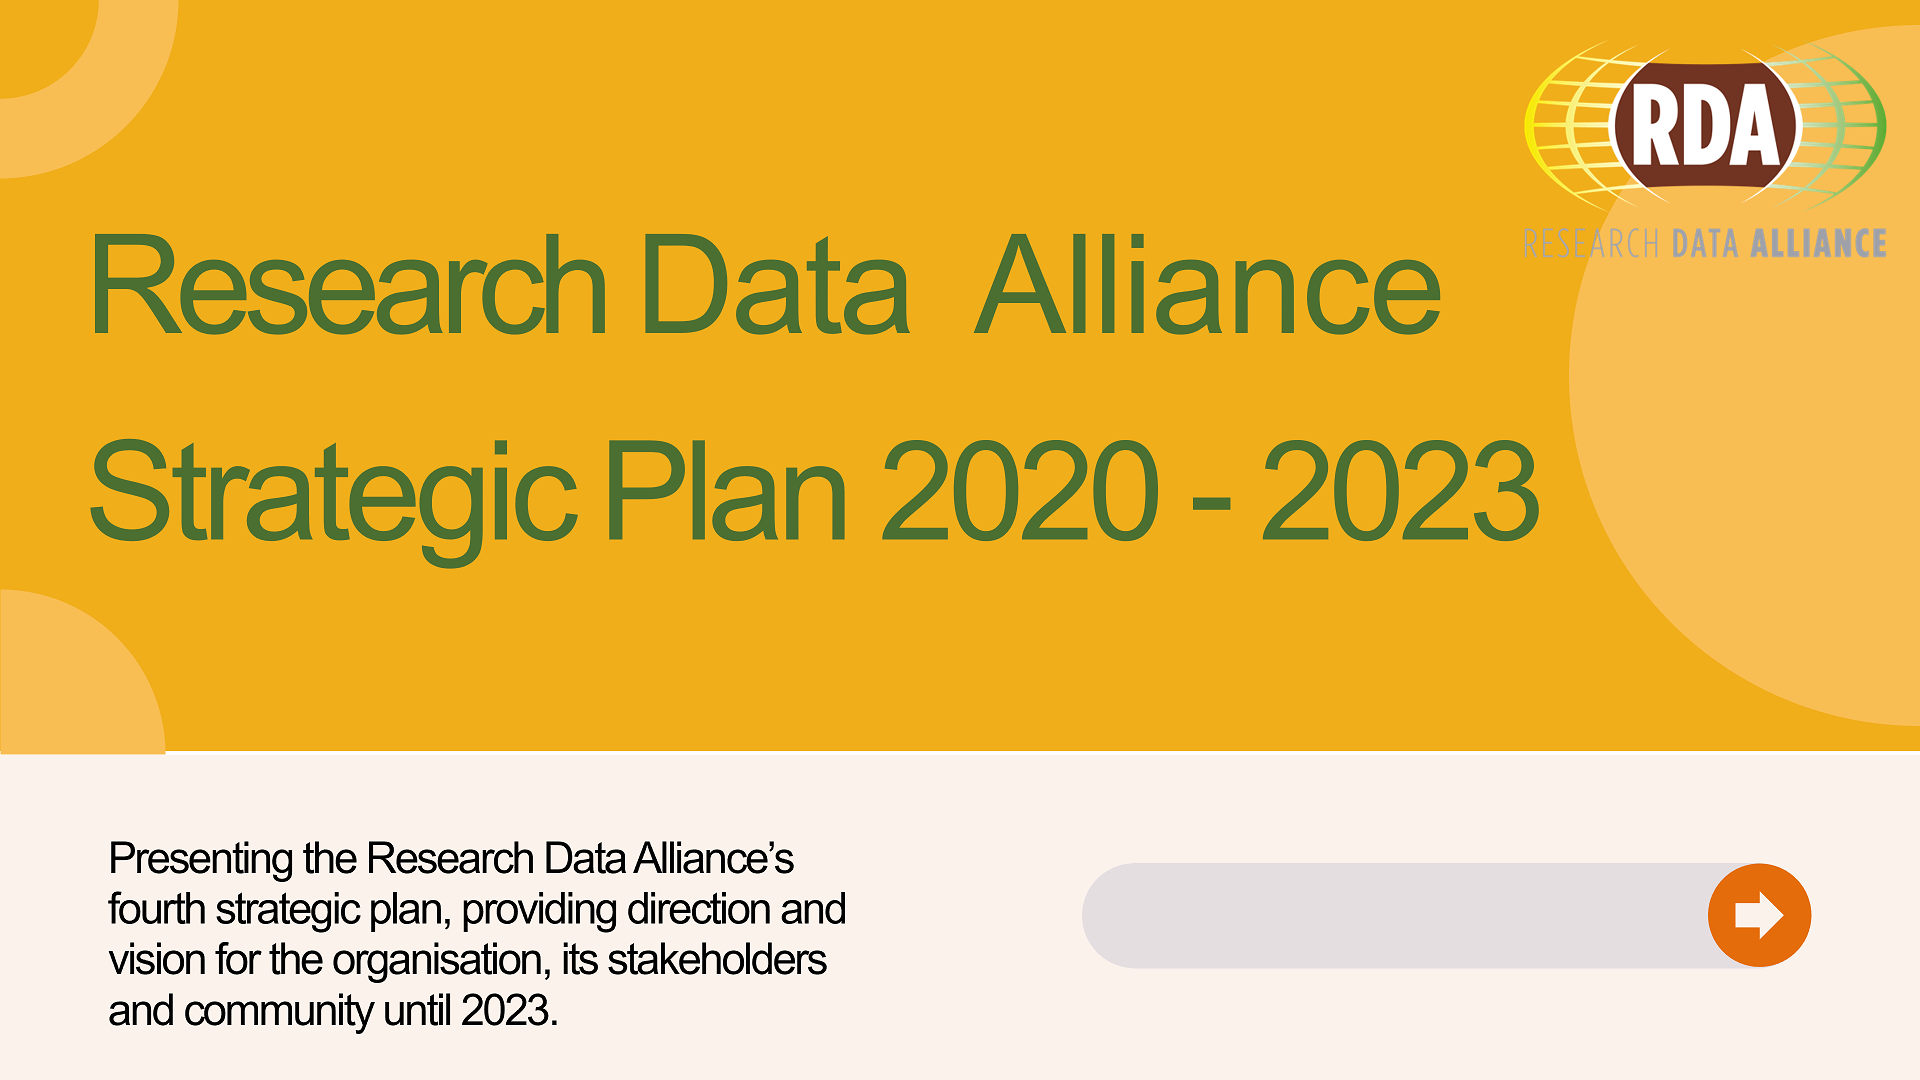 RDA Strategic Plan 2020 - 2023 Open for community feedback